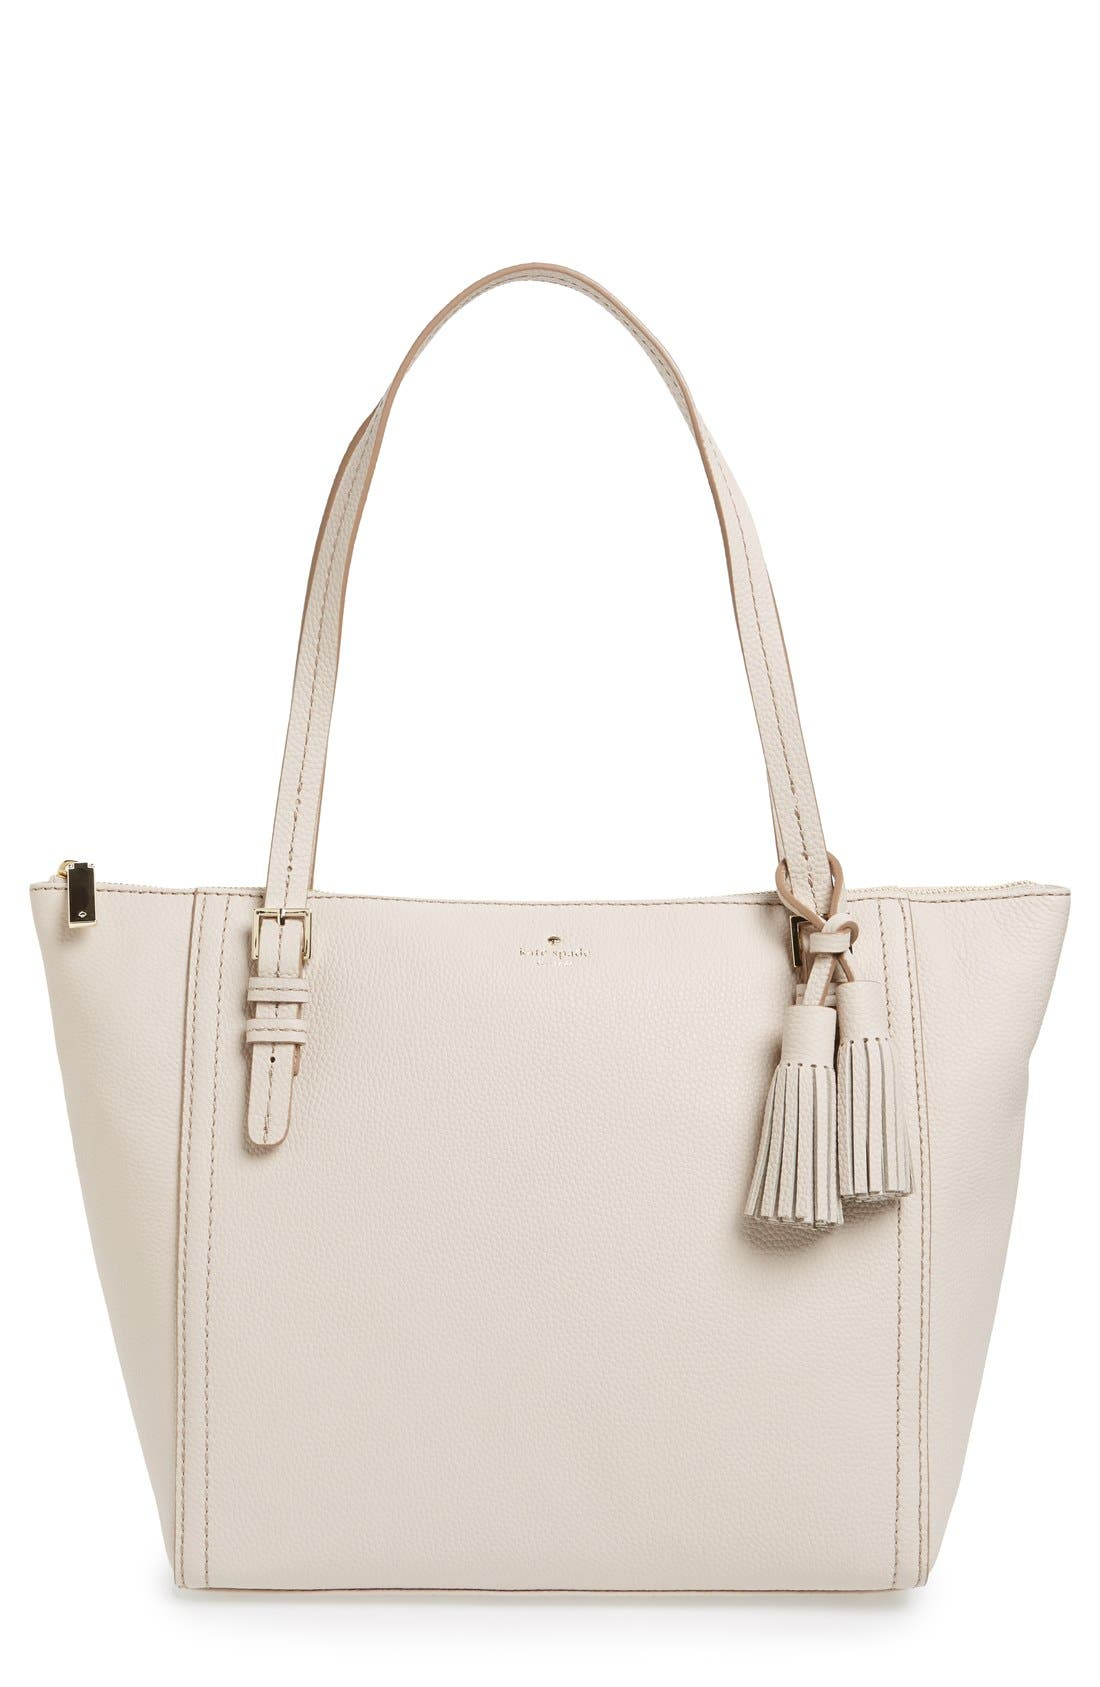 Alternate Image 1 Selected - kate spade new york orchard street - maya leather tote